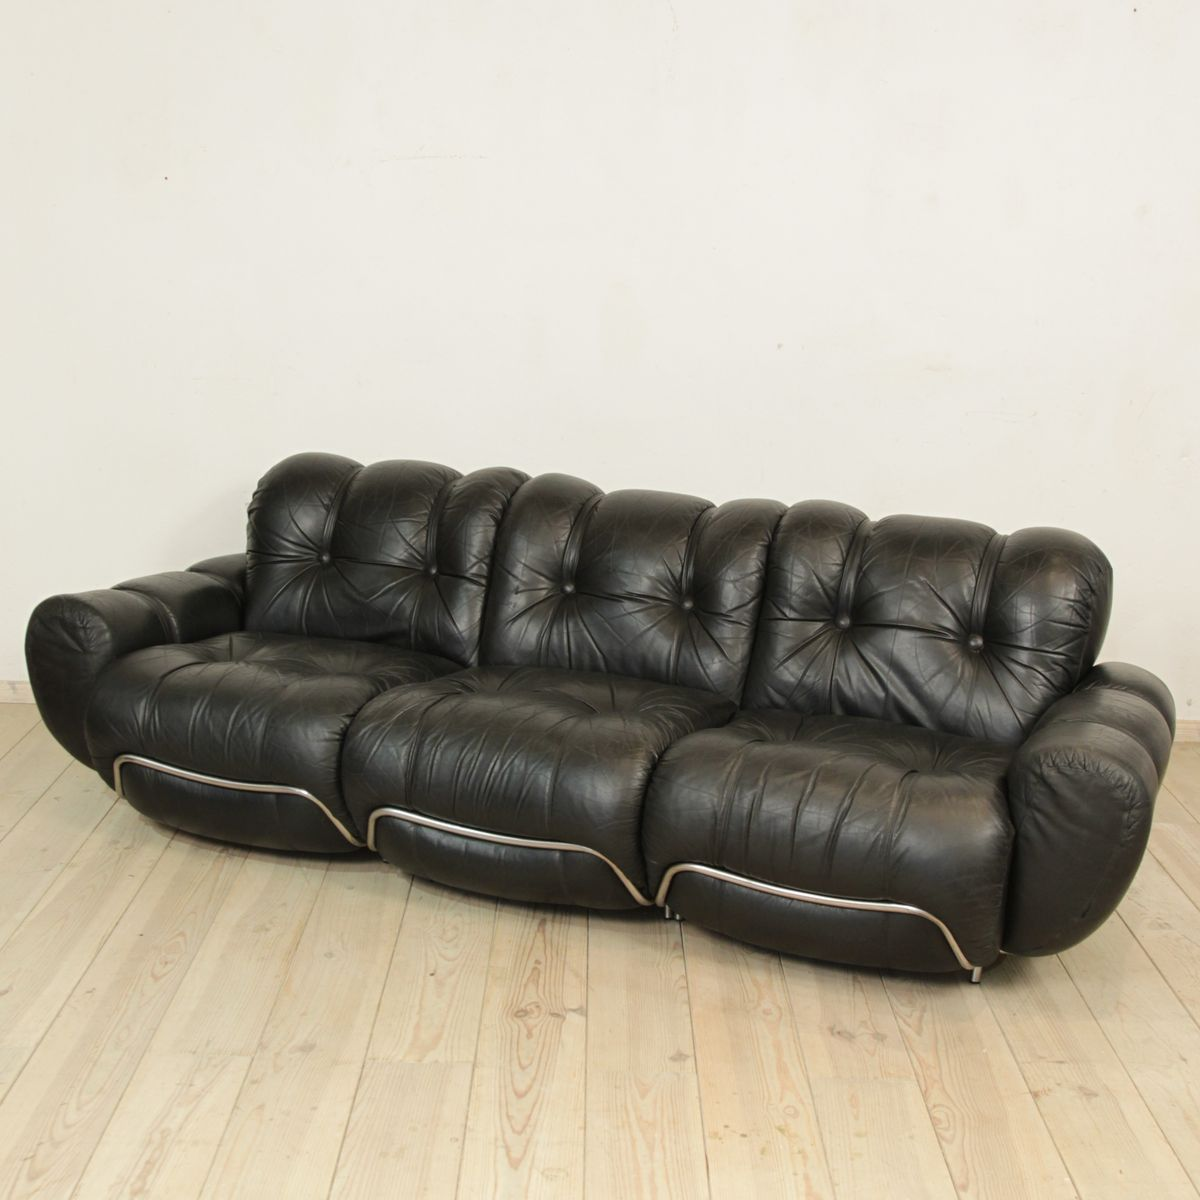 Italian Black Leather Sofa For Sale At Pamono